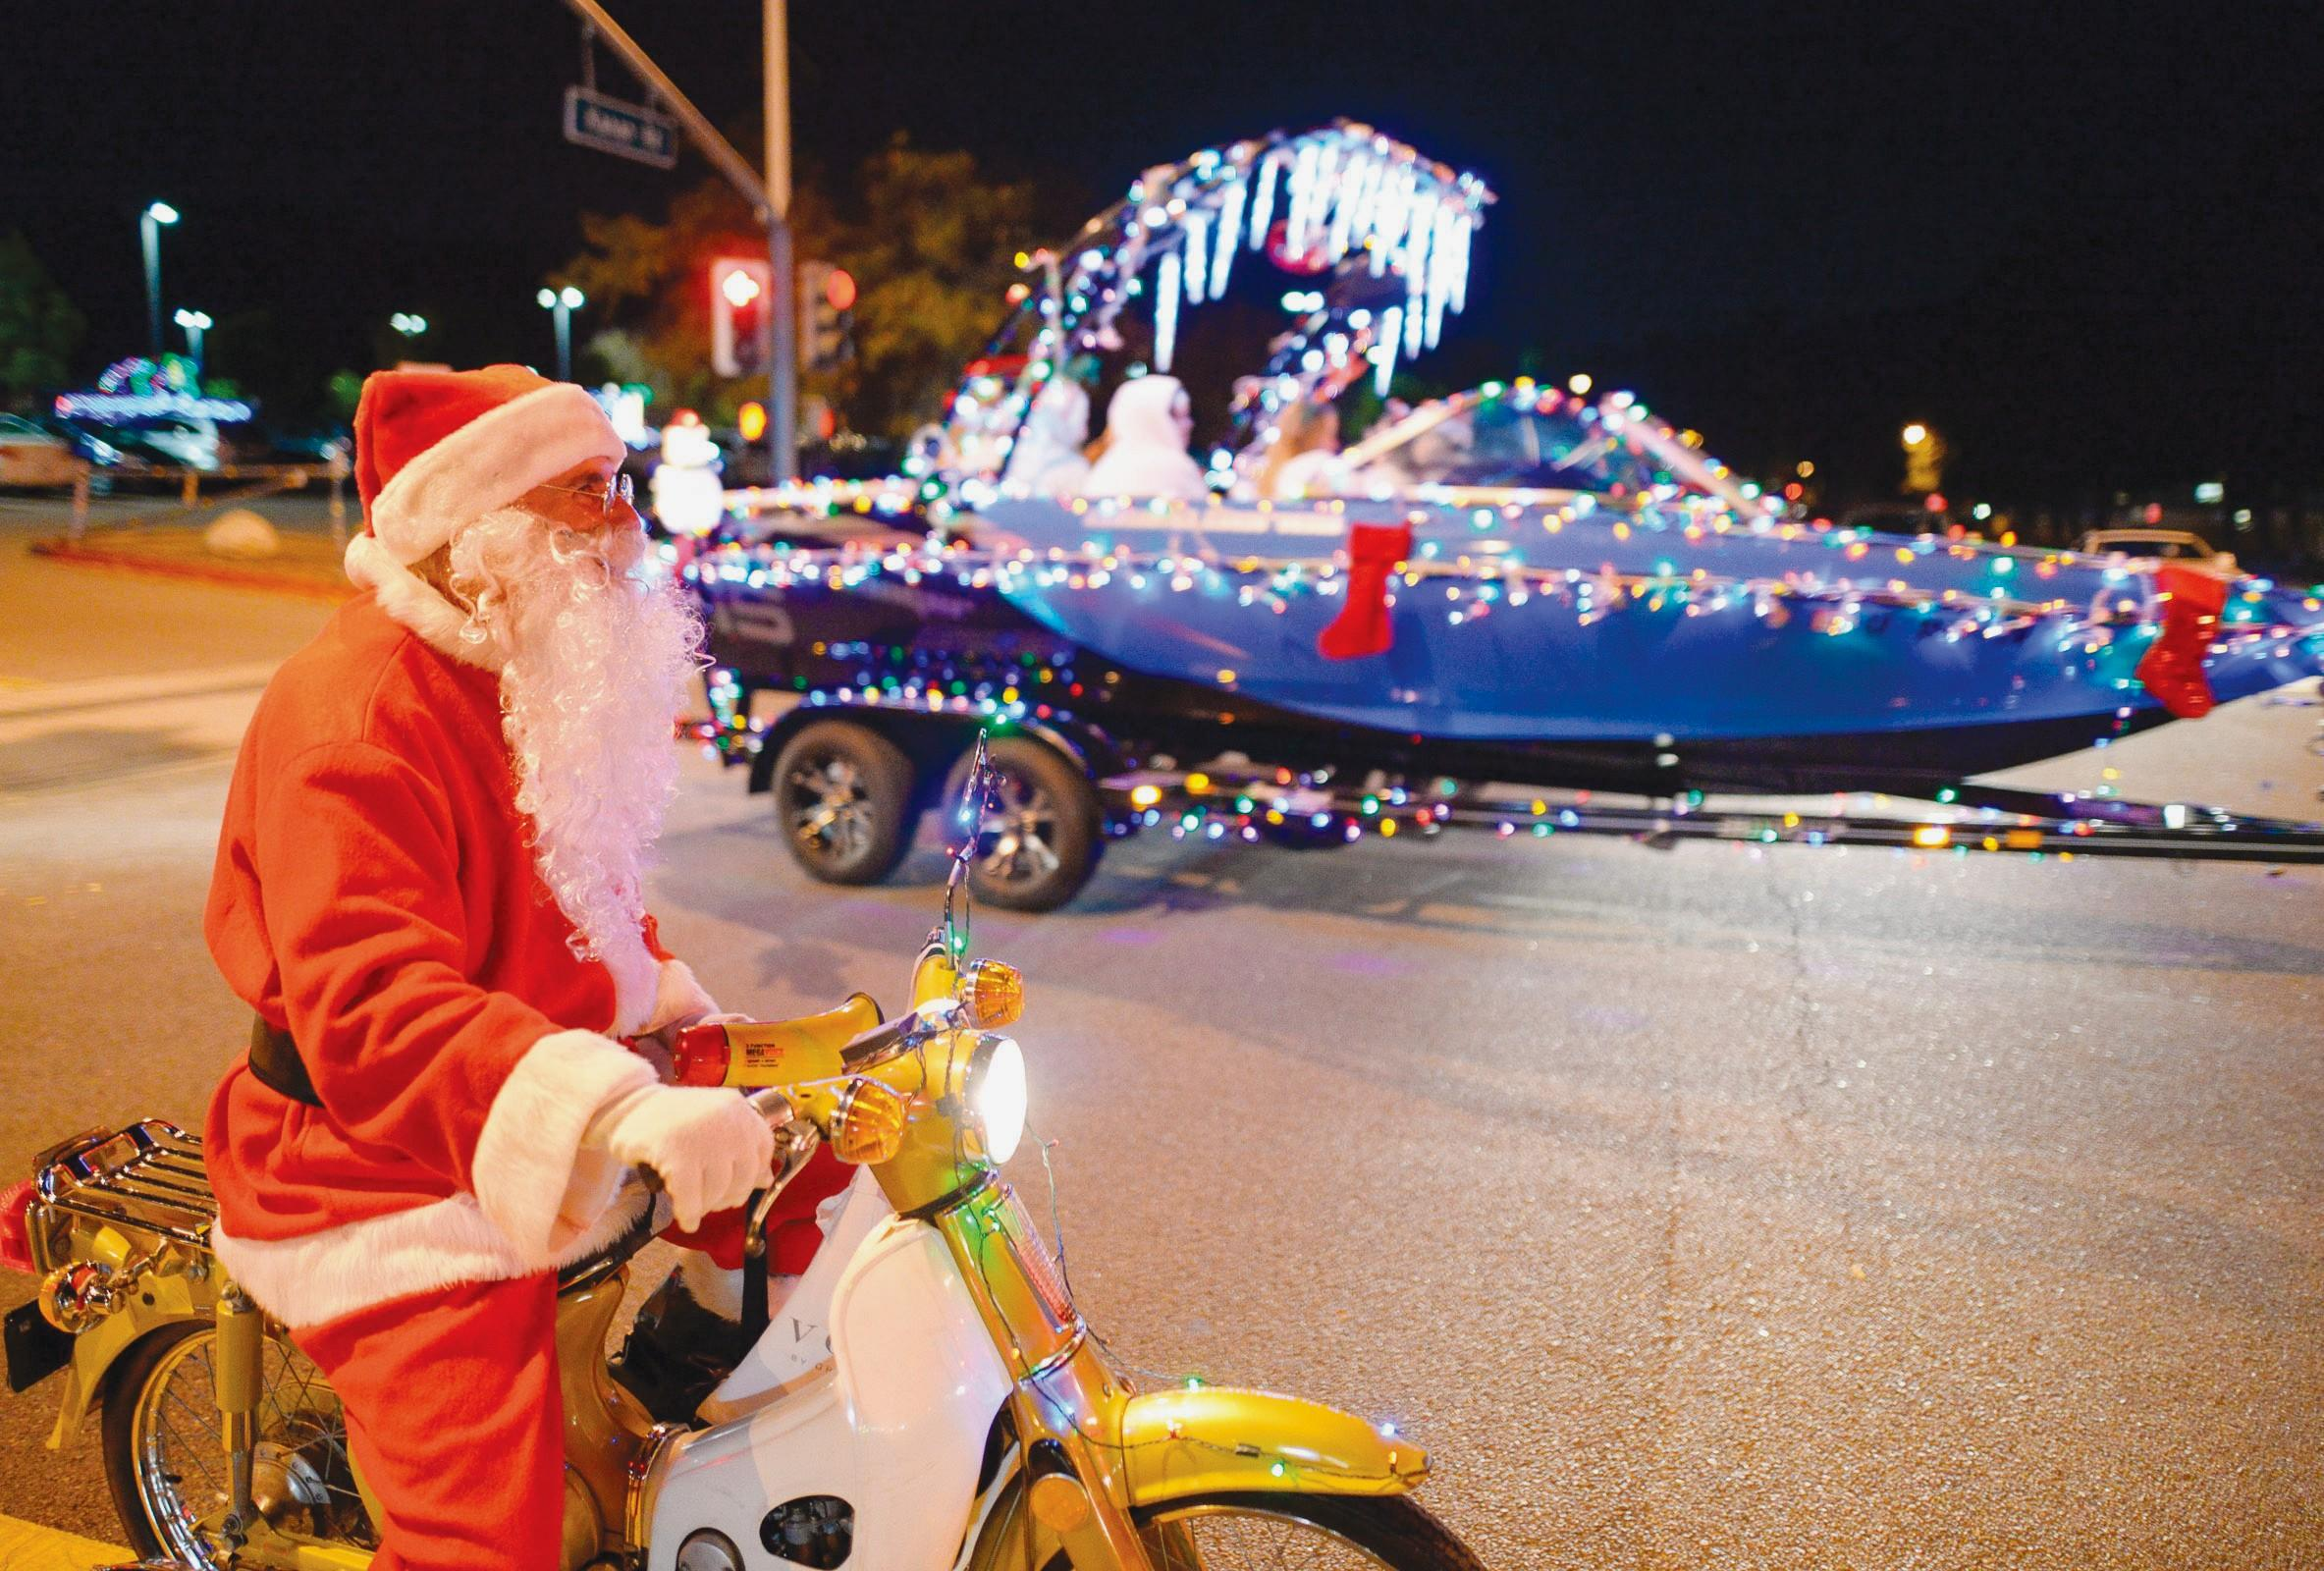 HO, HO, GO SLOW—Santa Claus Jerry Ramer of Oak Park helps direct the 16th annual Oak Park Boat Regatta as it departs Oak Park High School on Dec. 20. The quirky parade has become an annual tradition.